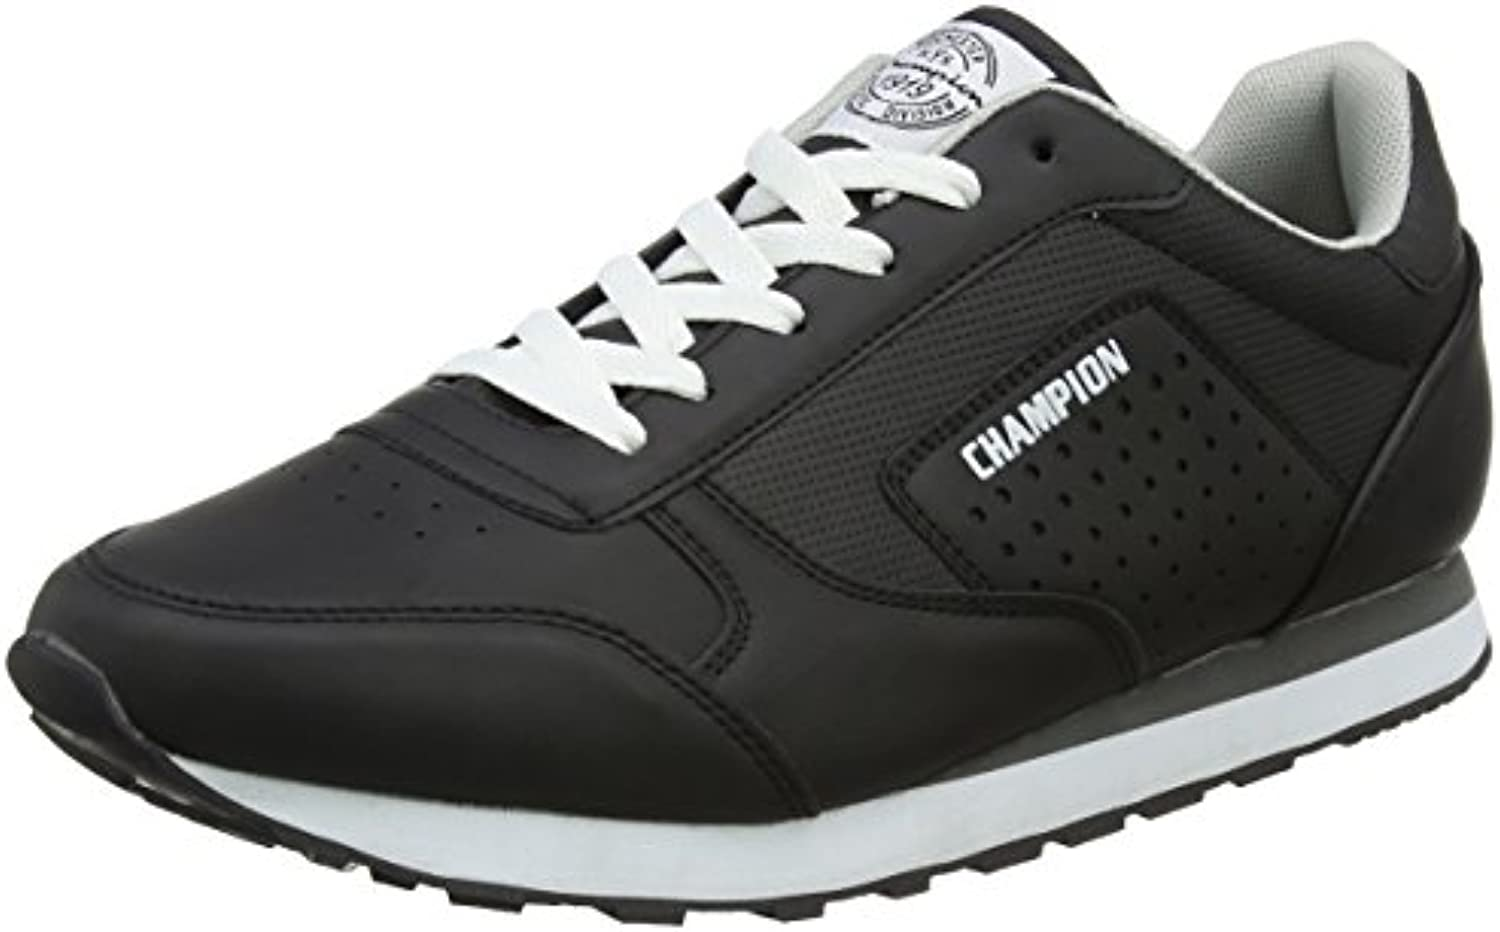 Champion Herren Low Cut Shoe C.j. PU Sneaker